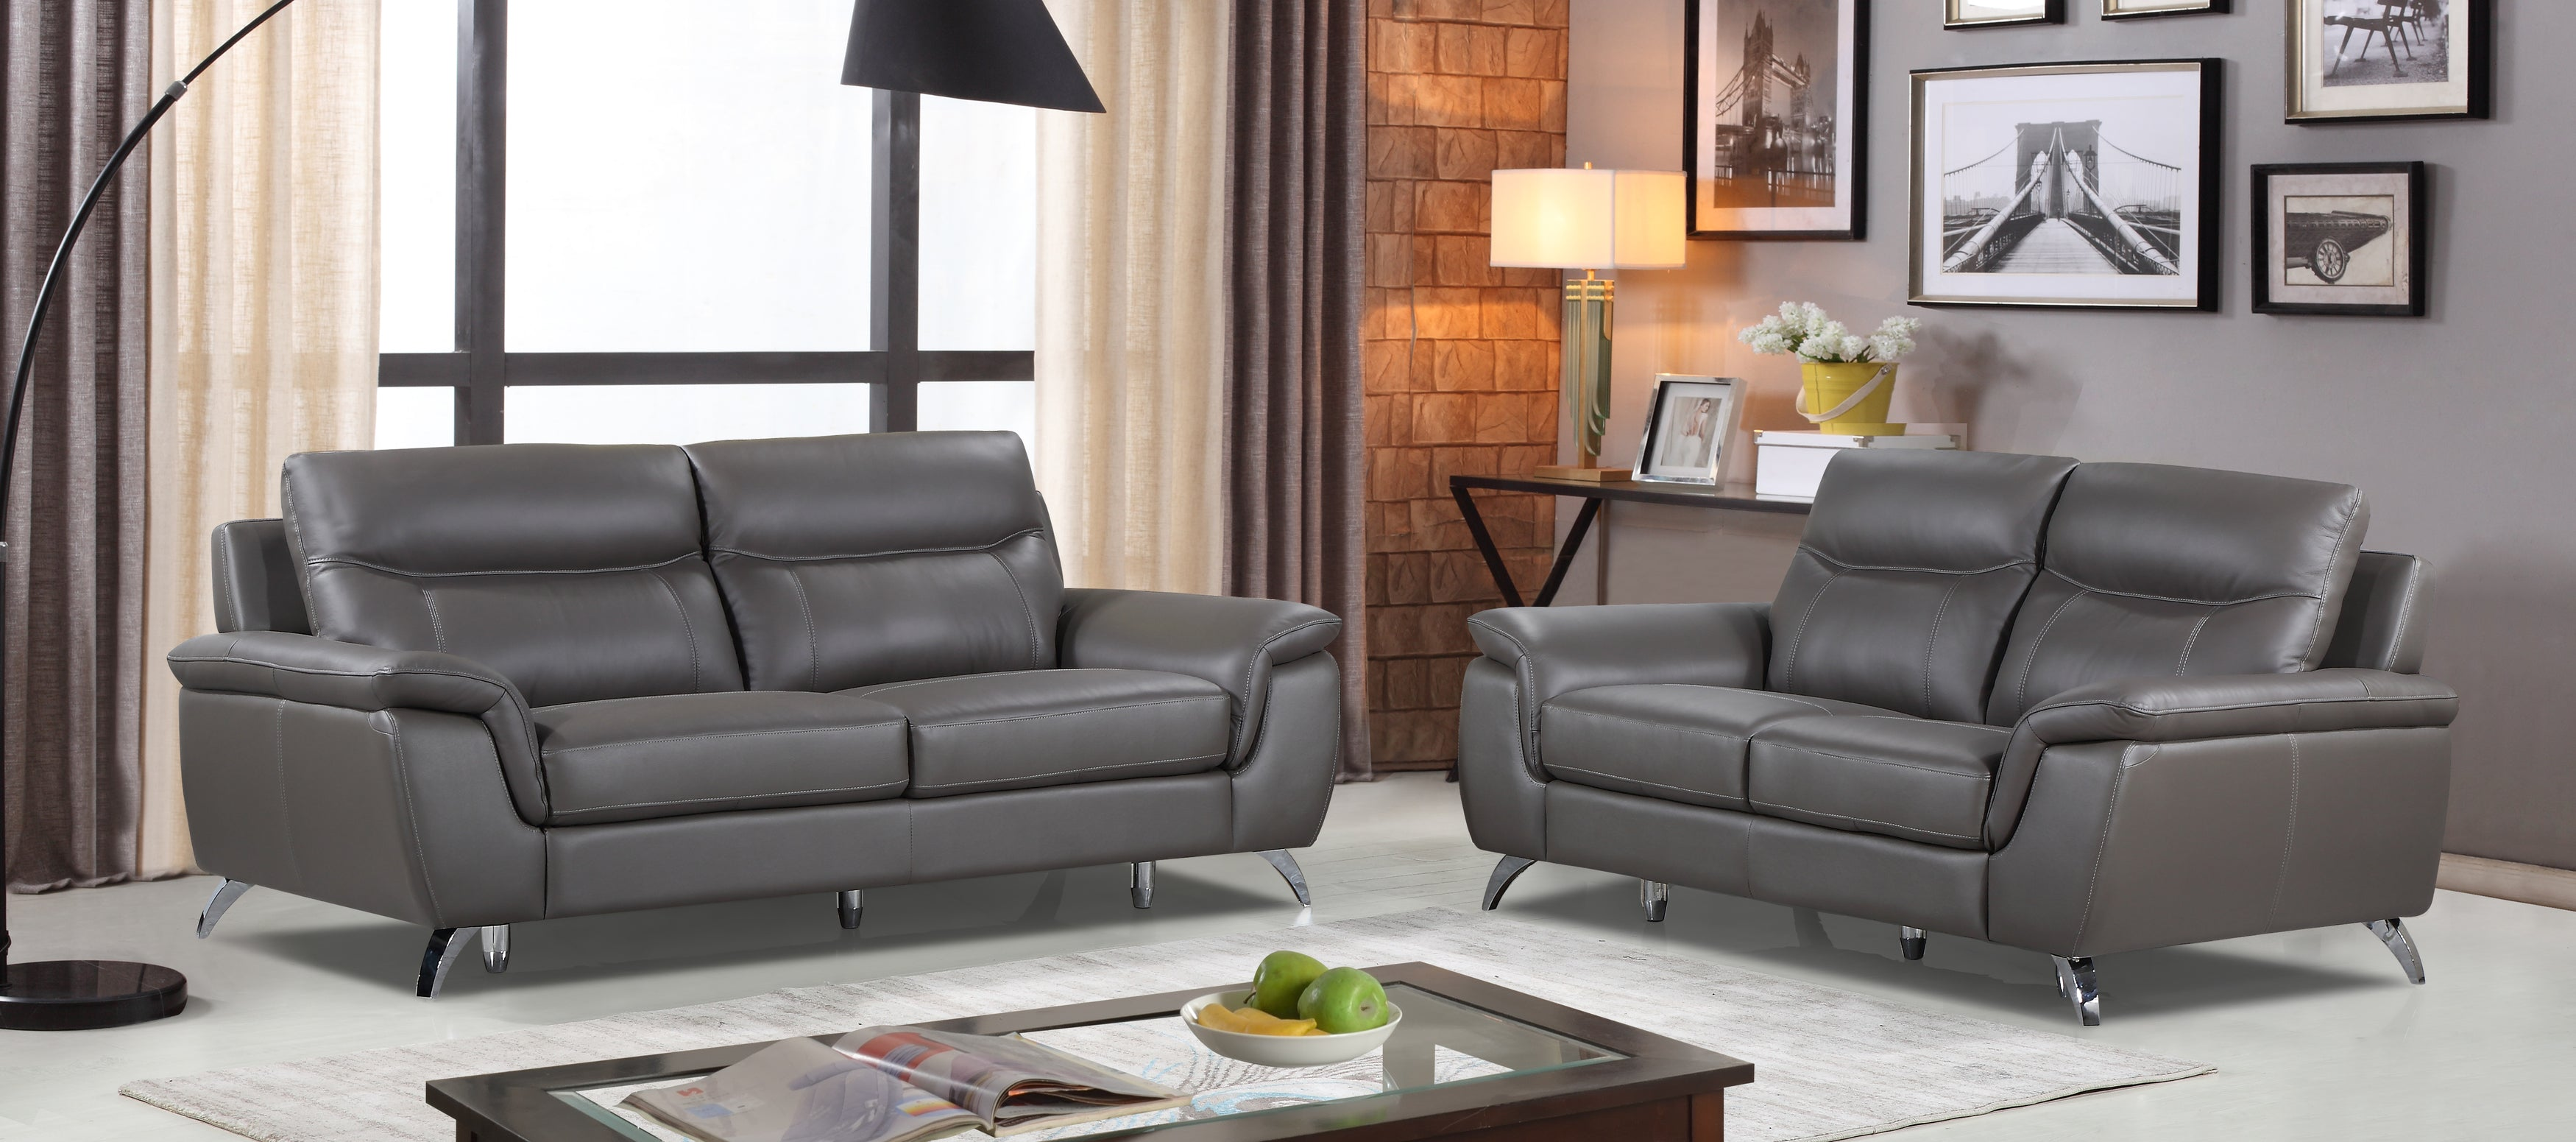 Outstanding Cortesi Home Chicago Genuine Leather Sofa Loveseat Set Dark Grey Unemploymentrelief Wooden Chair Designs For Living Room Unemploymentrelieforg